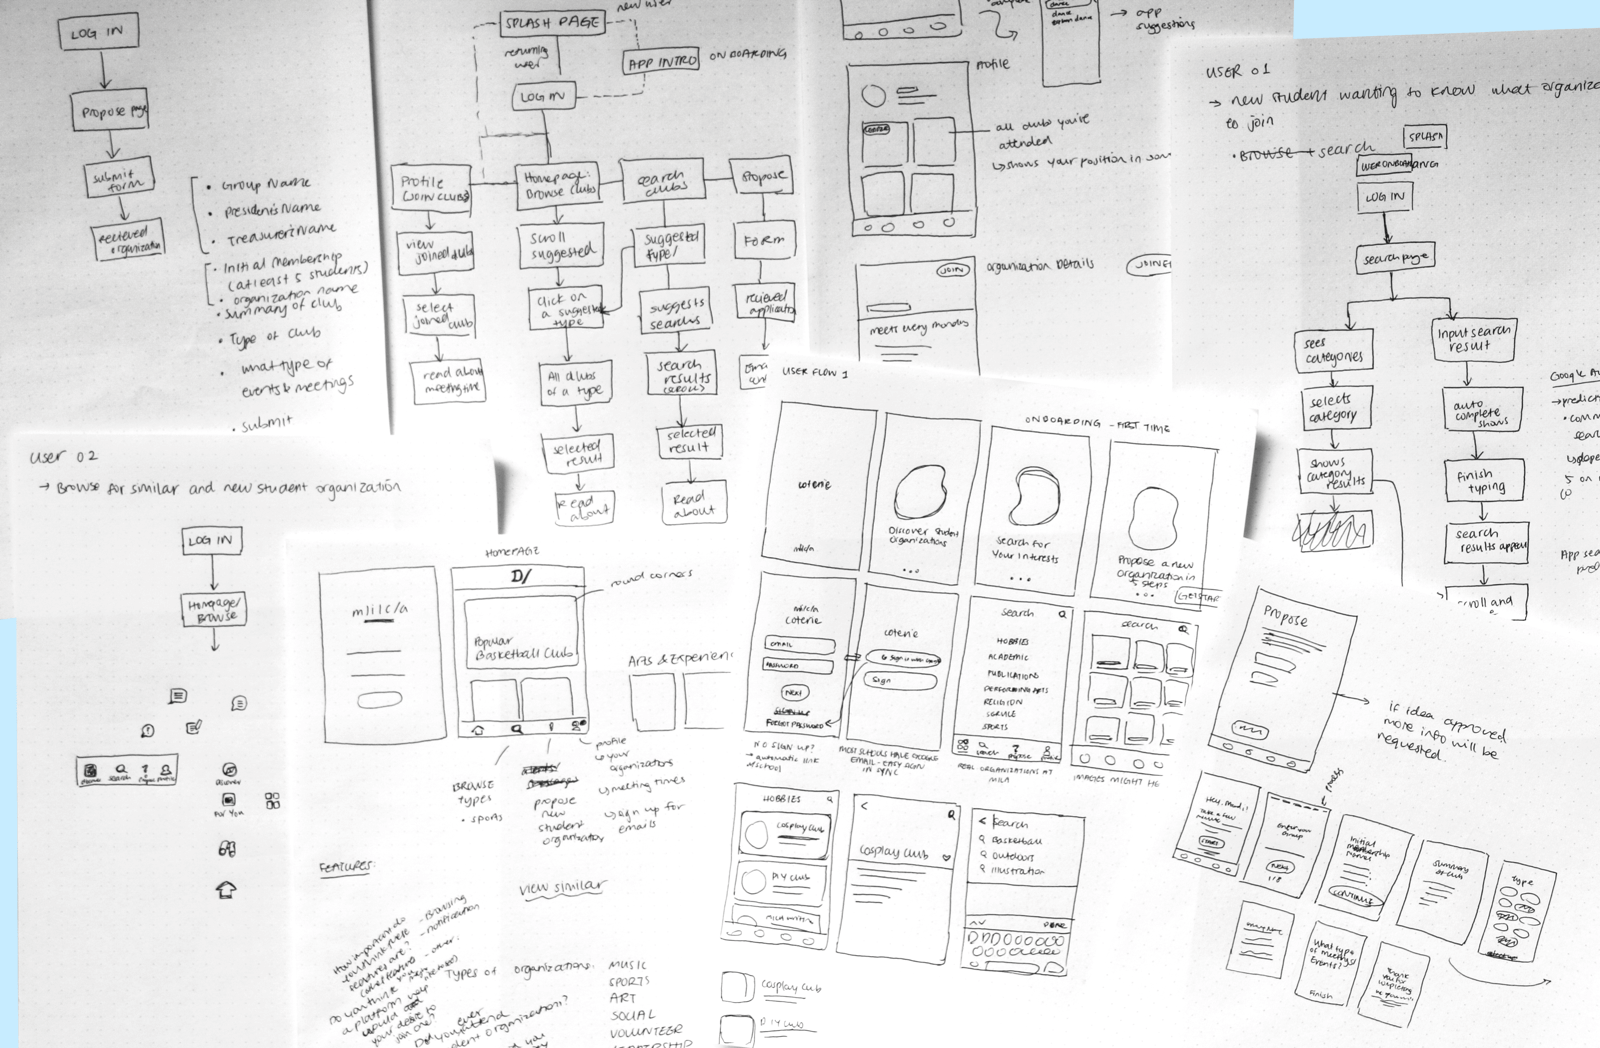 Ideation and sketches for the App.